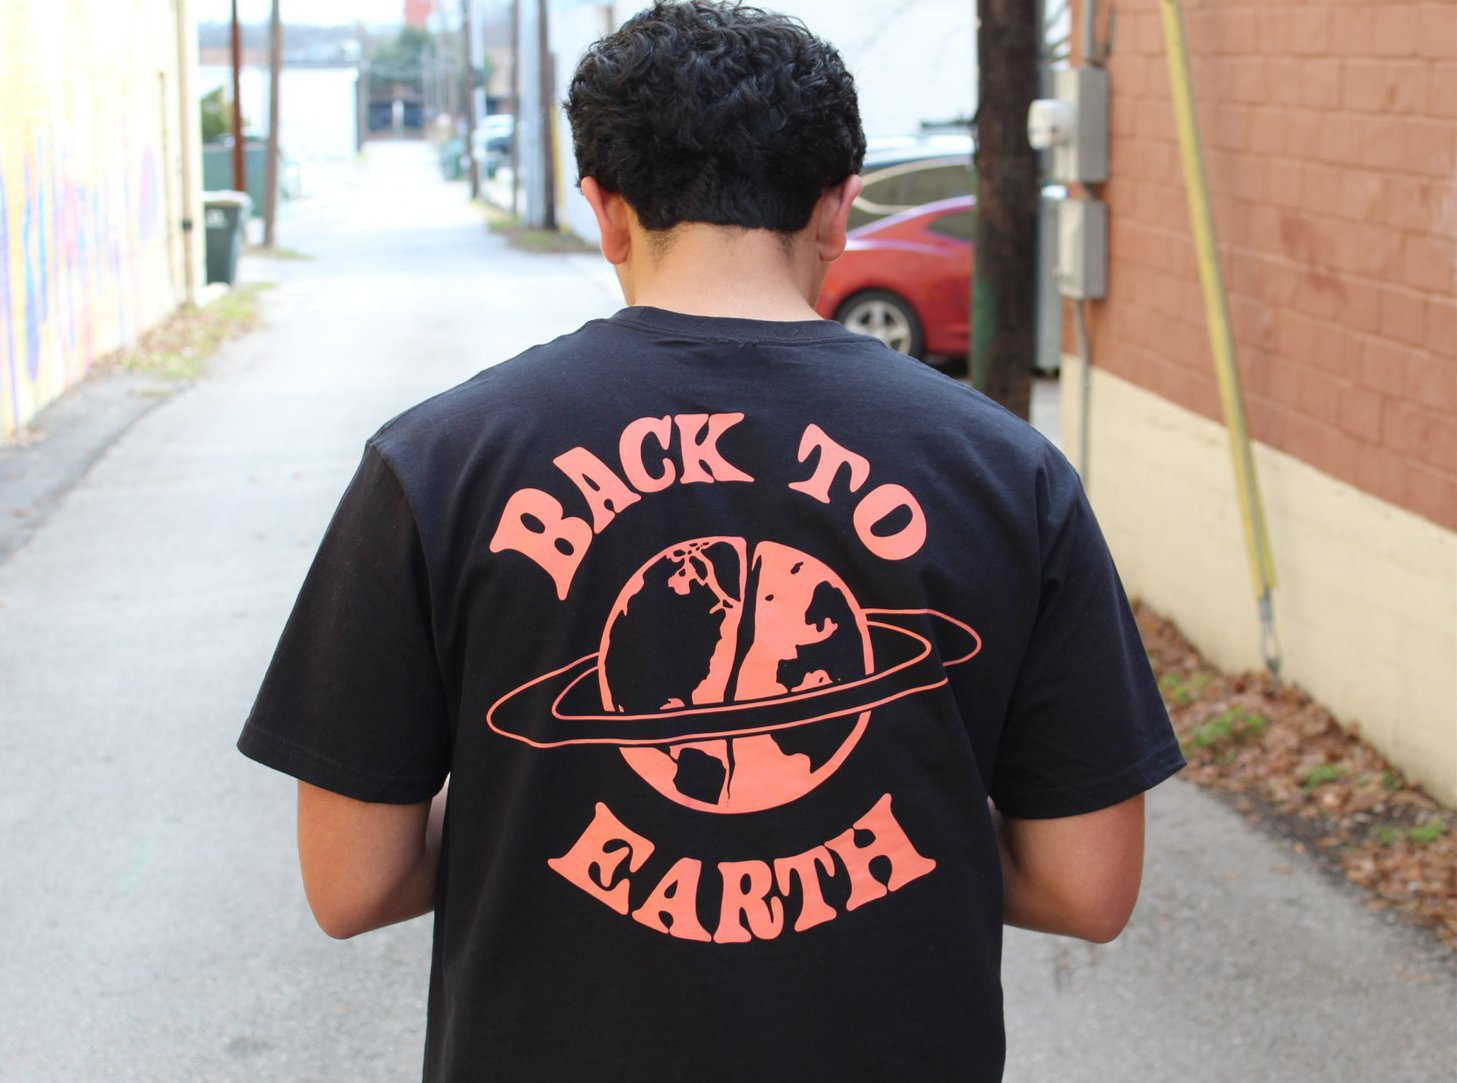 BACK TO EARTH T-SHIRT